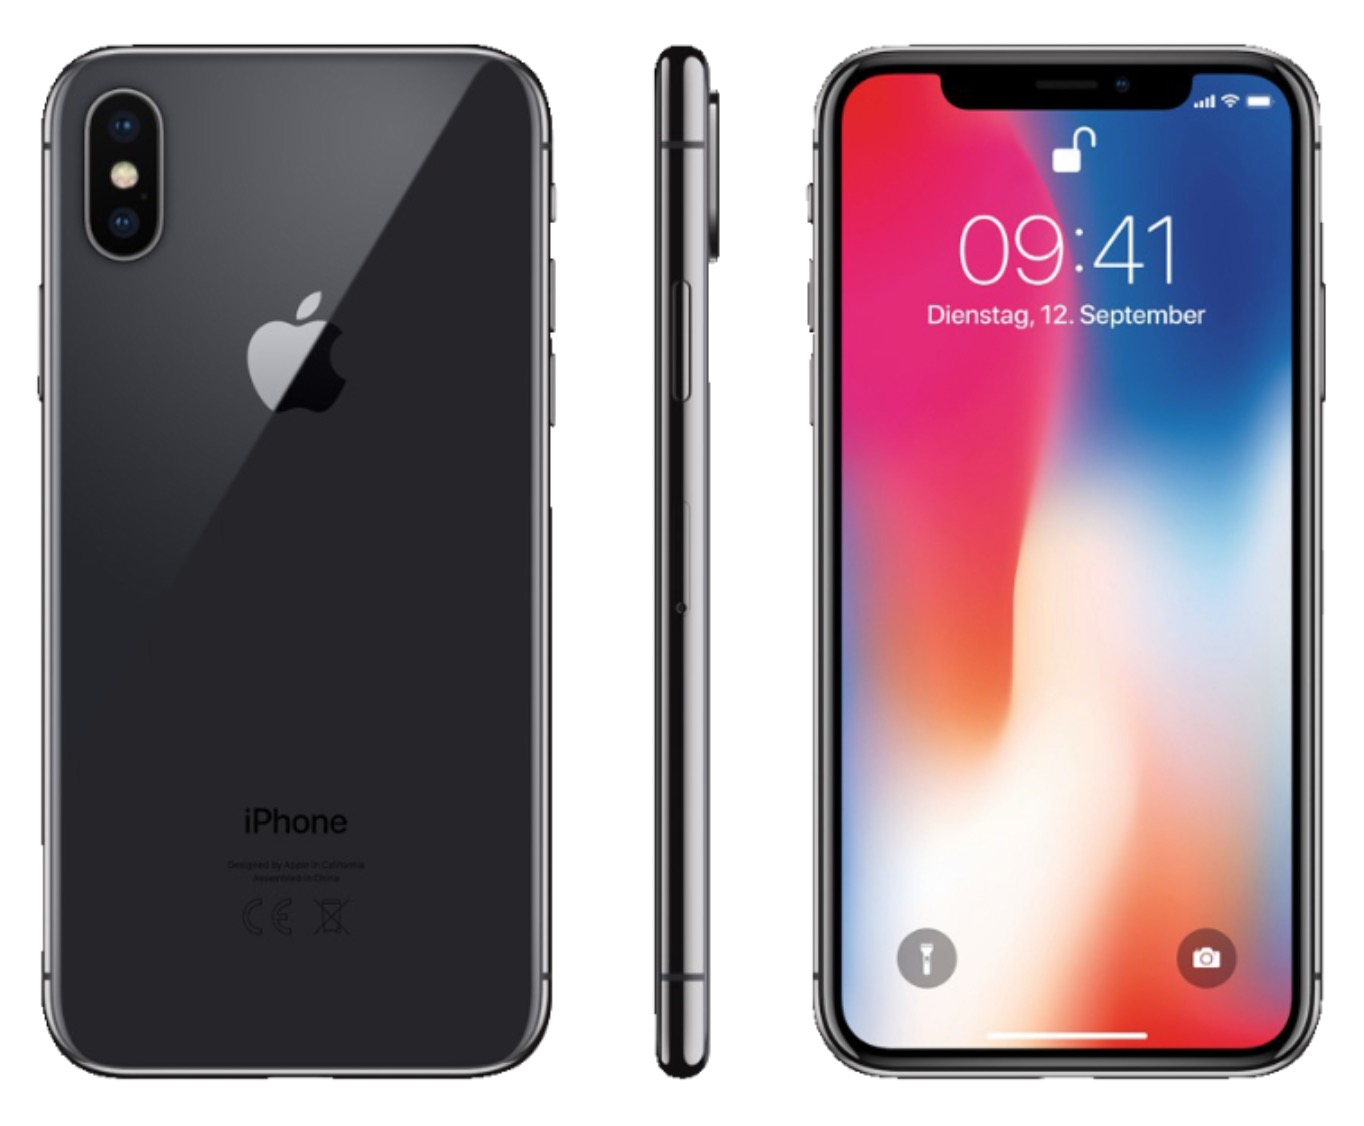 das neue apple iphone x bei mediamarkt vorbestellbar 0. Black Bedroom Furniture Sets. Home Design Ideas